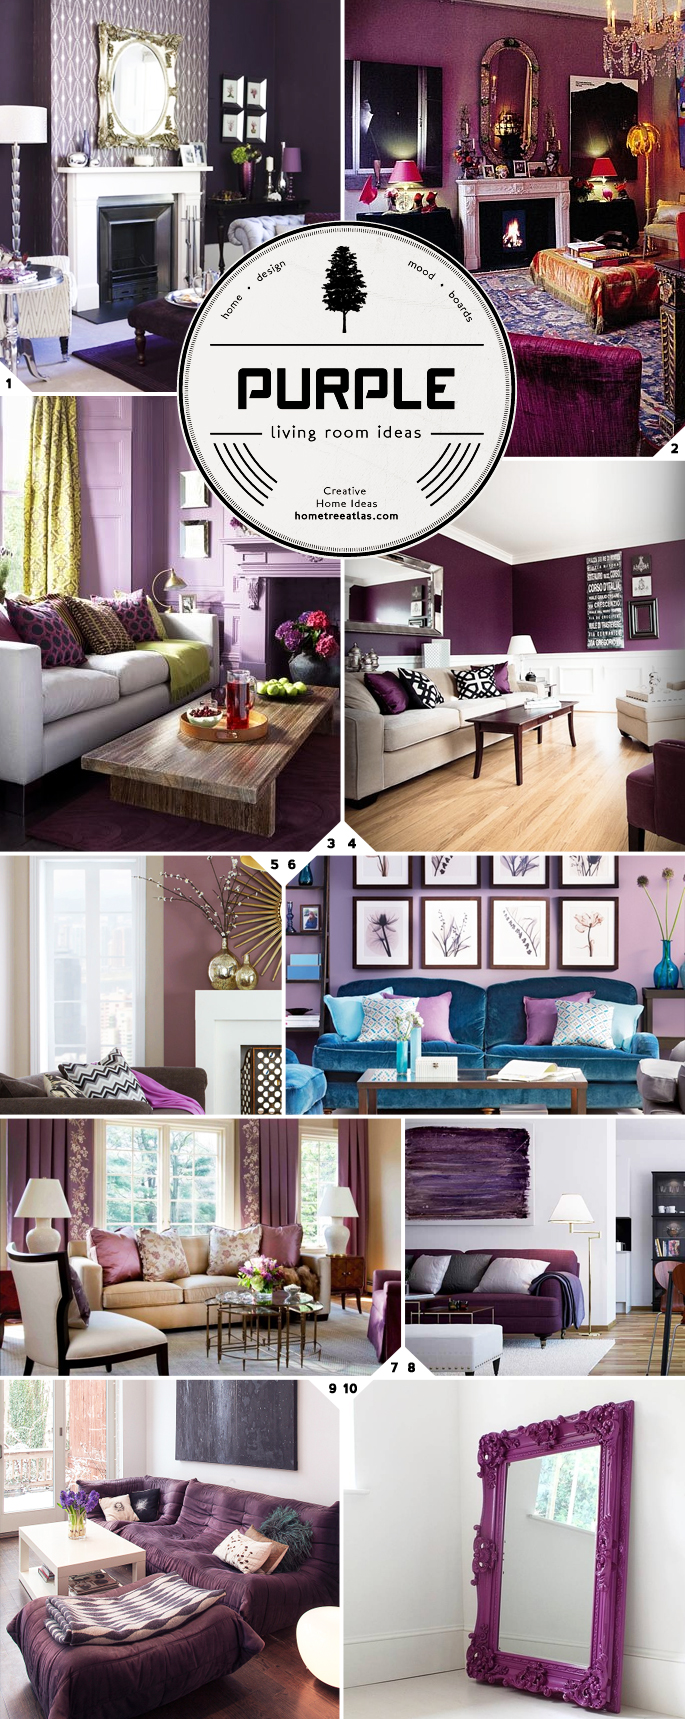 The Color Palette Purple Living Room Ideas And Design